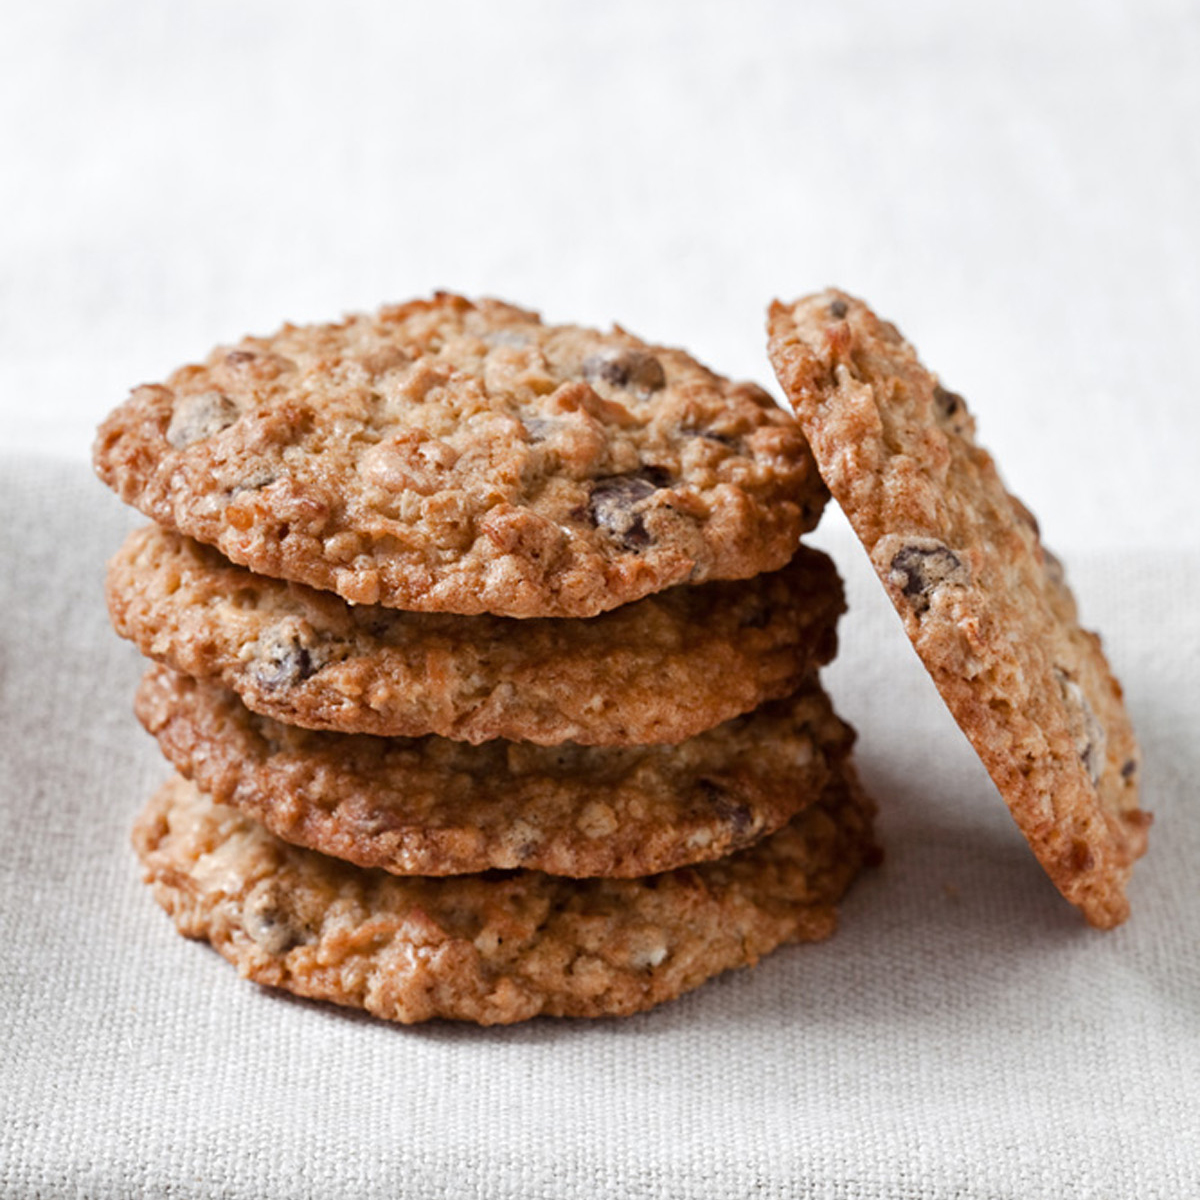 Chocolate Chip Oatmeal Cookie Recipe Food Network